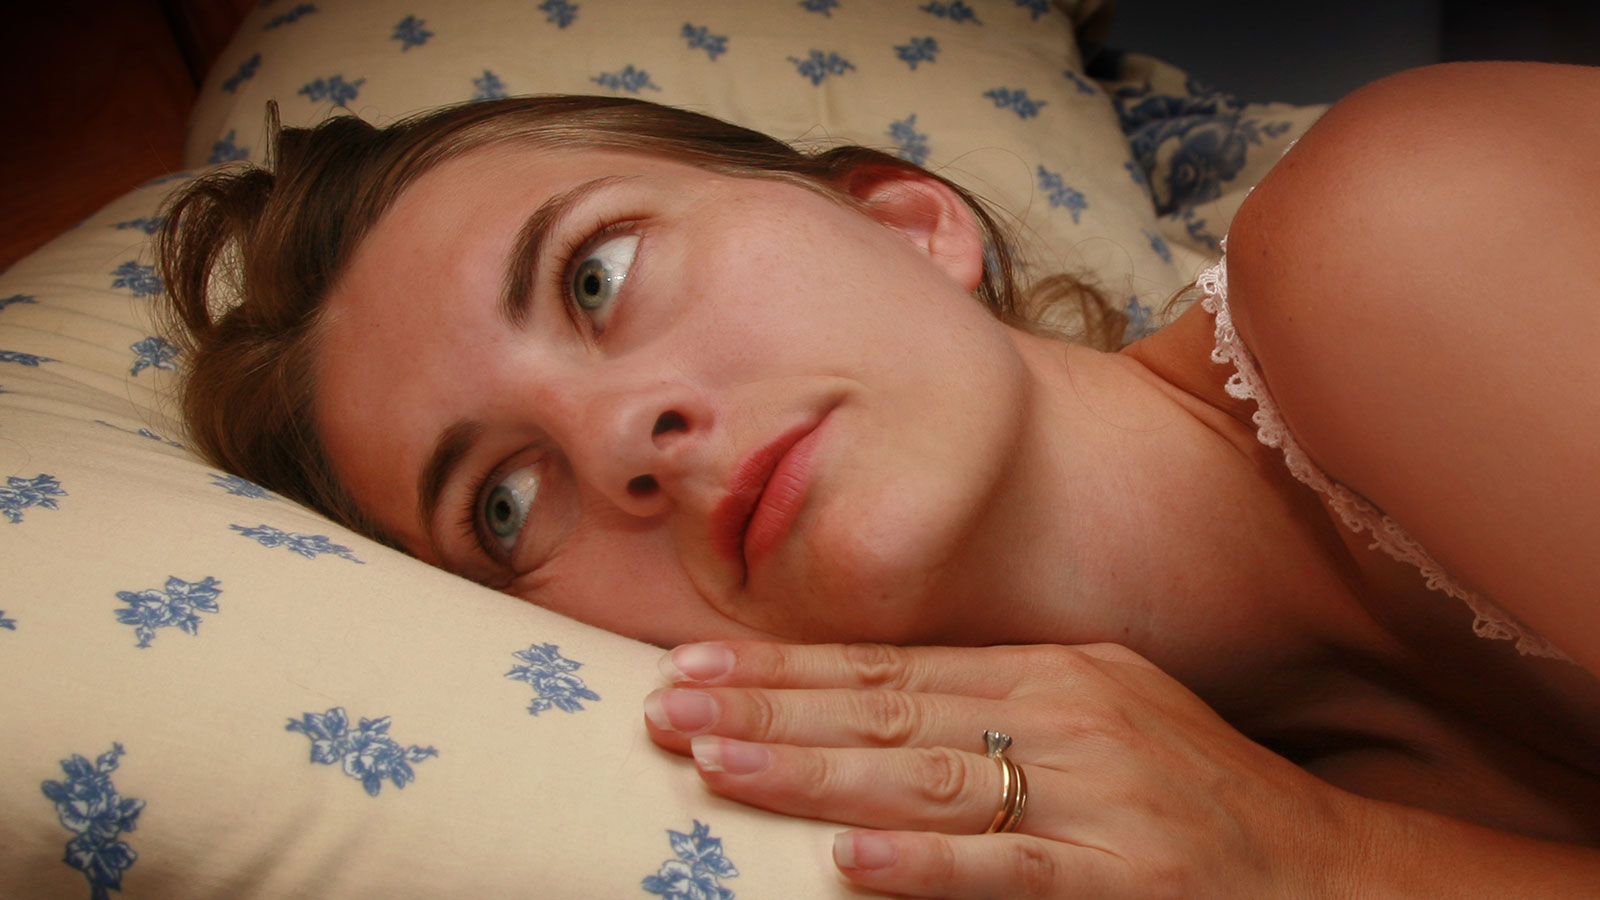 If your sleep is poor, you could be at risk for developing this disease